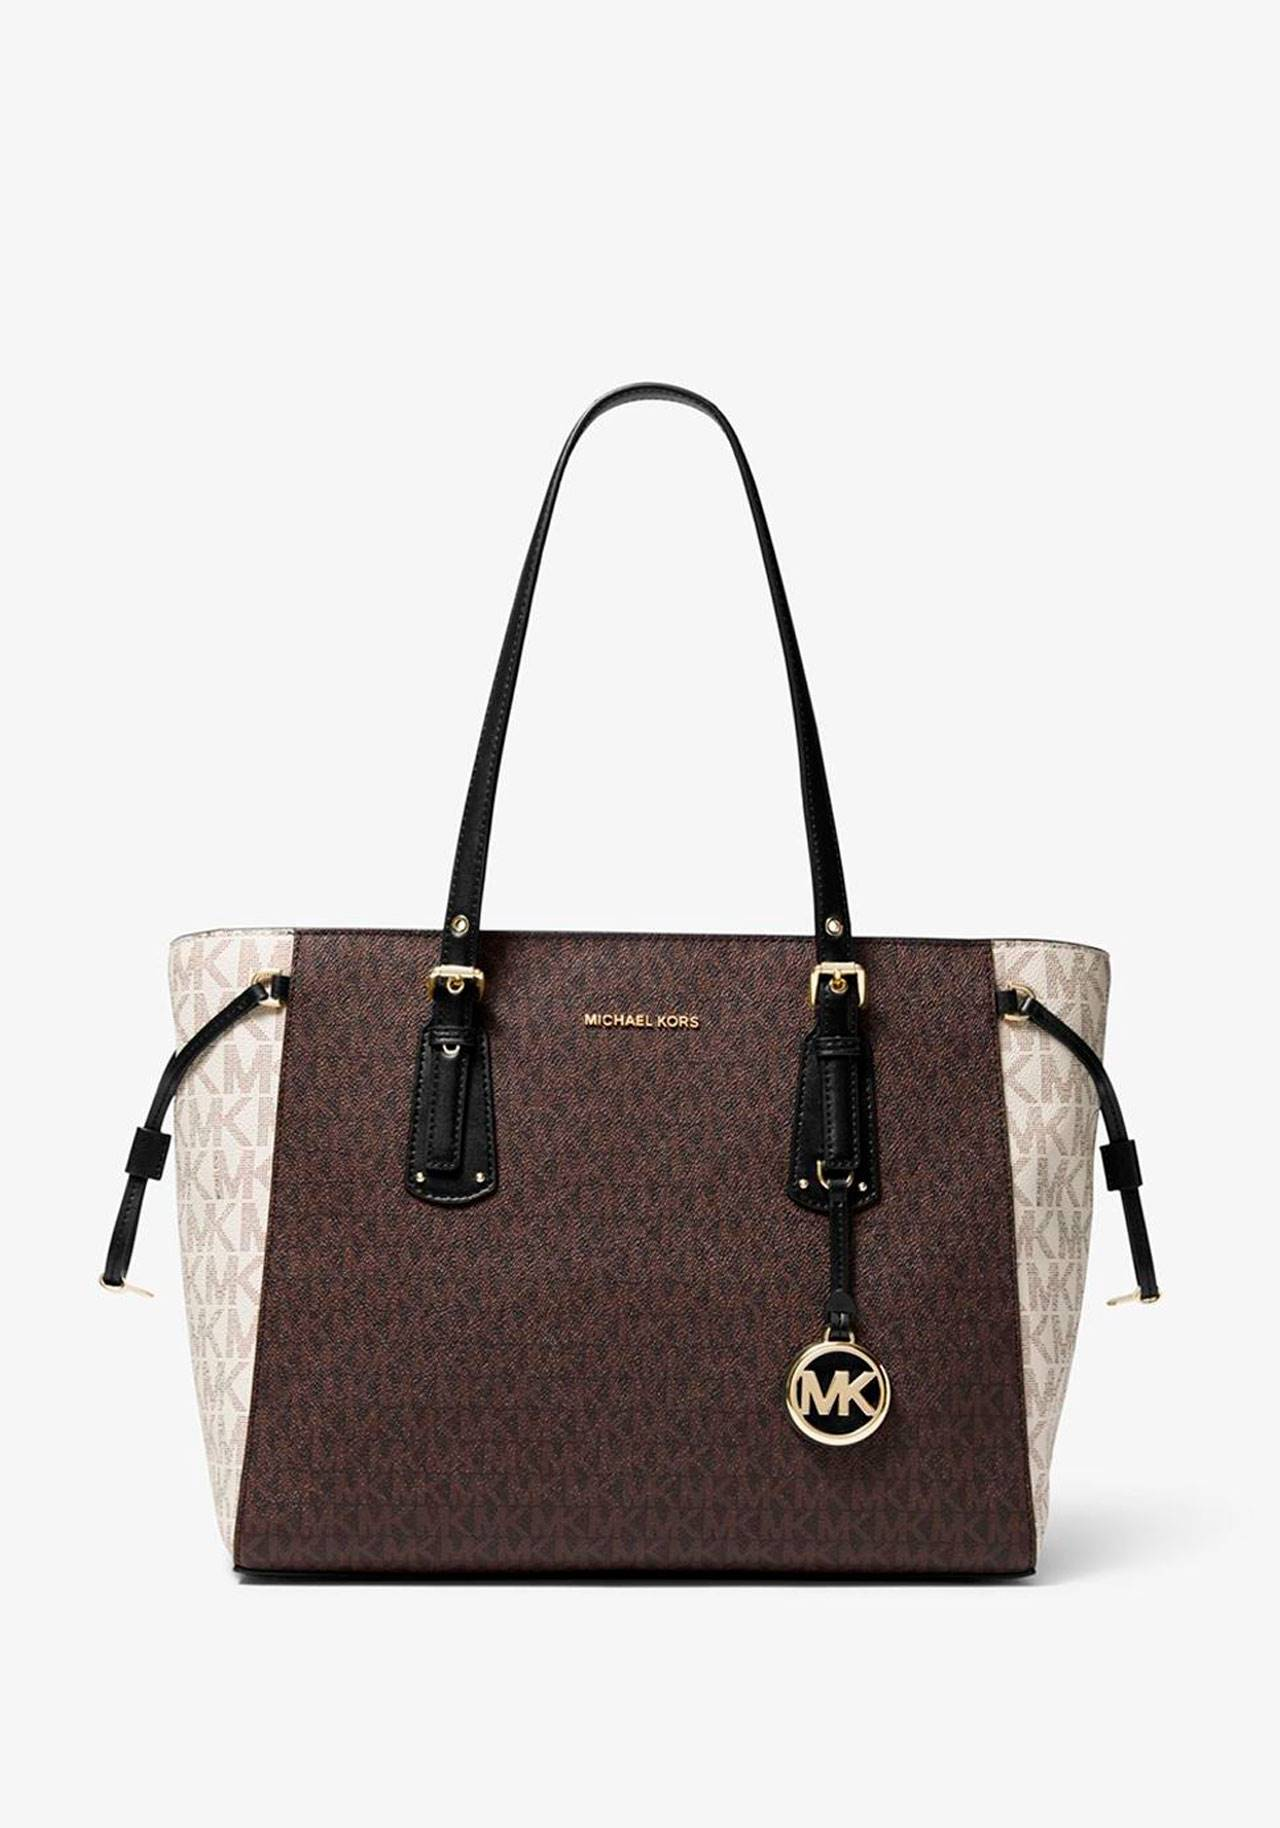 shopper-michael-kors